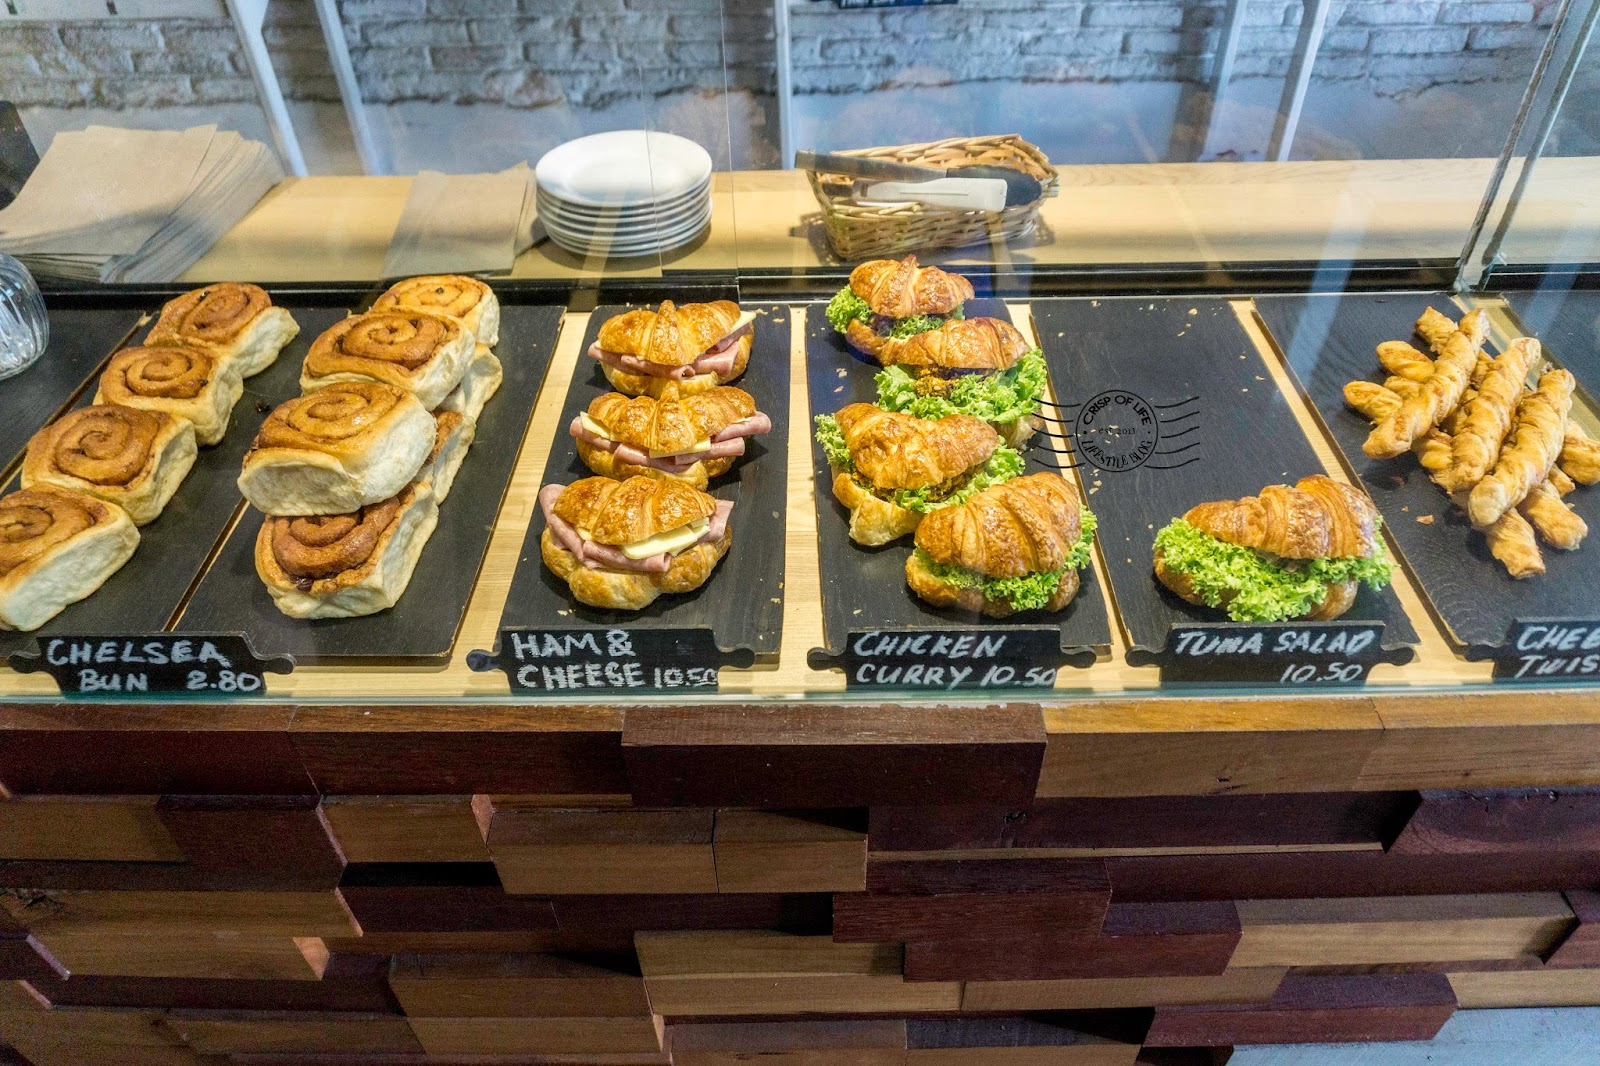 Chulia Street Food Trail: Rainforest Bakery